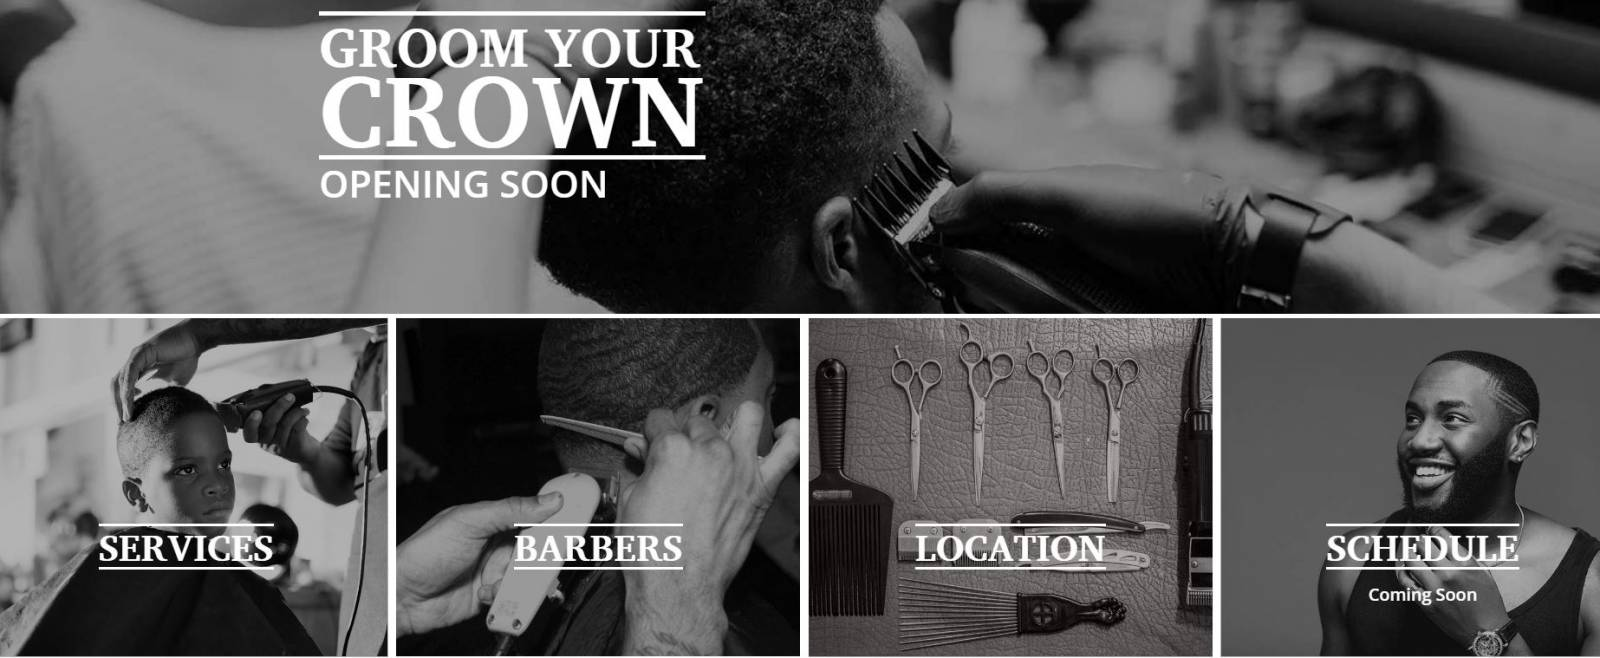 King Culture Hair Grooming Services